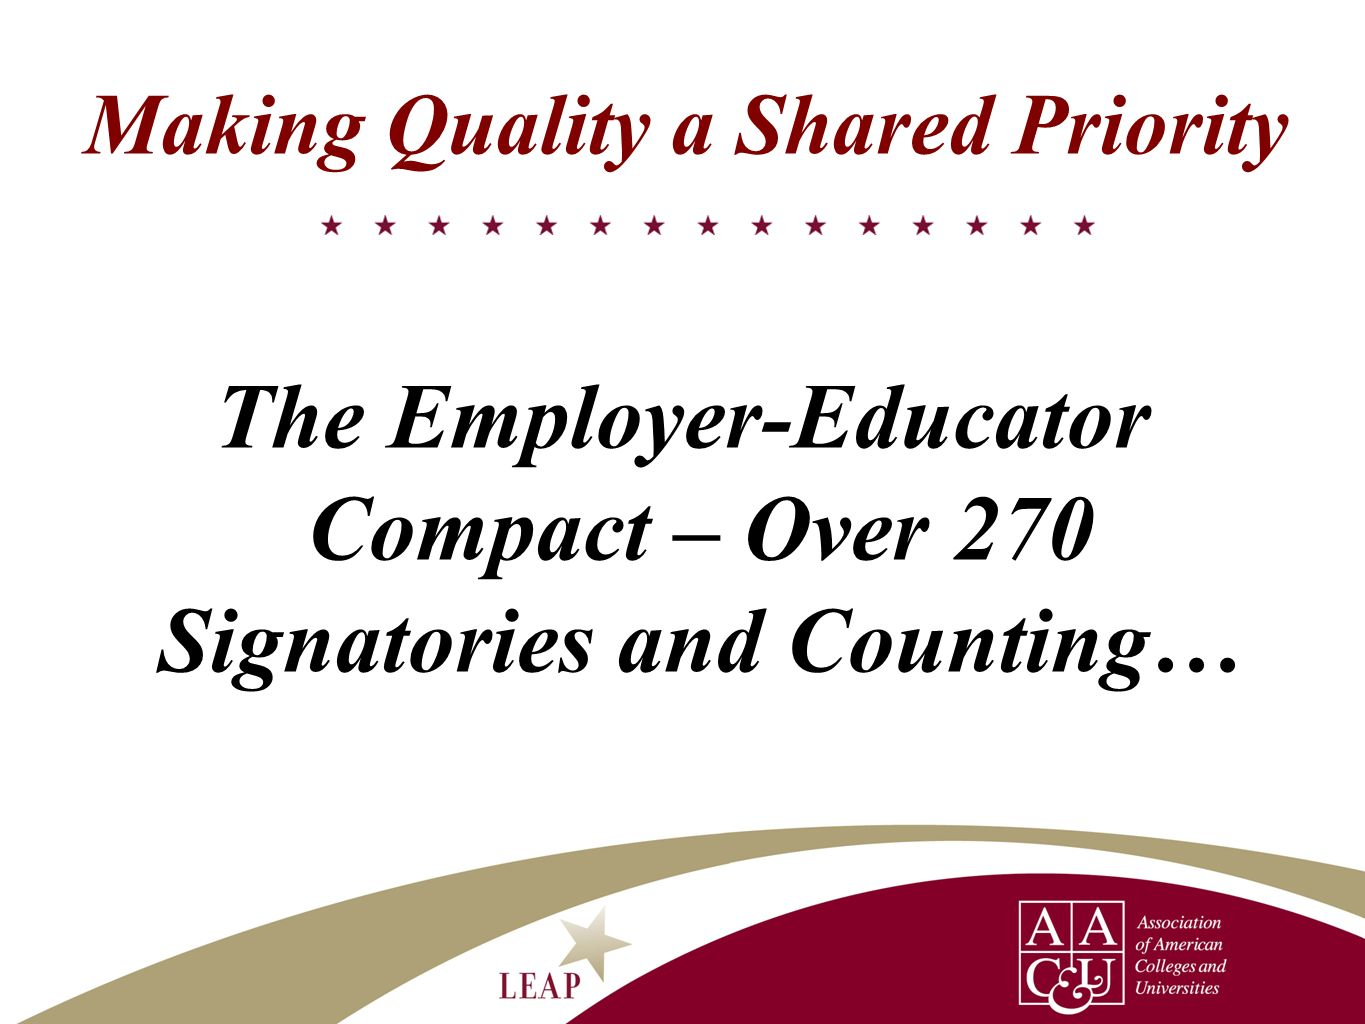 Making Quality a Shared Priority The Employer-Educator Compact – Over 270 Signatories and Counting…